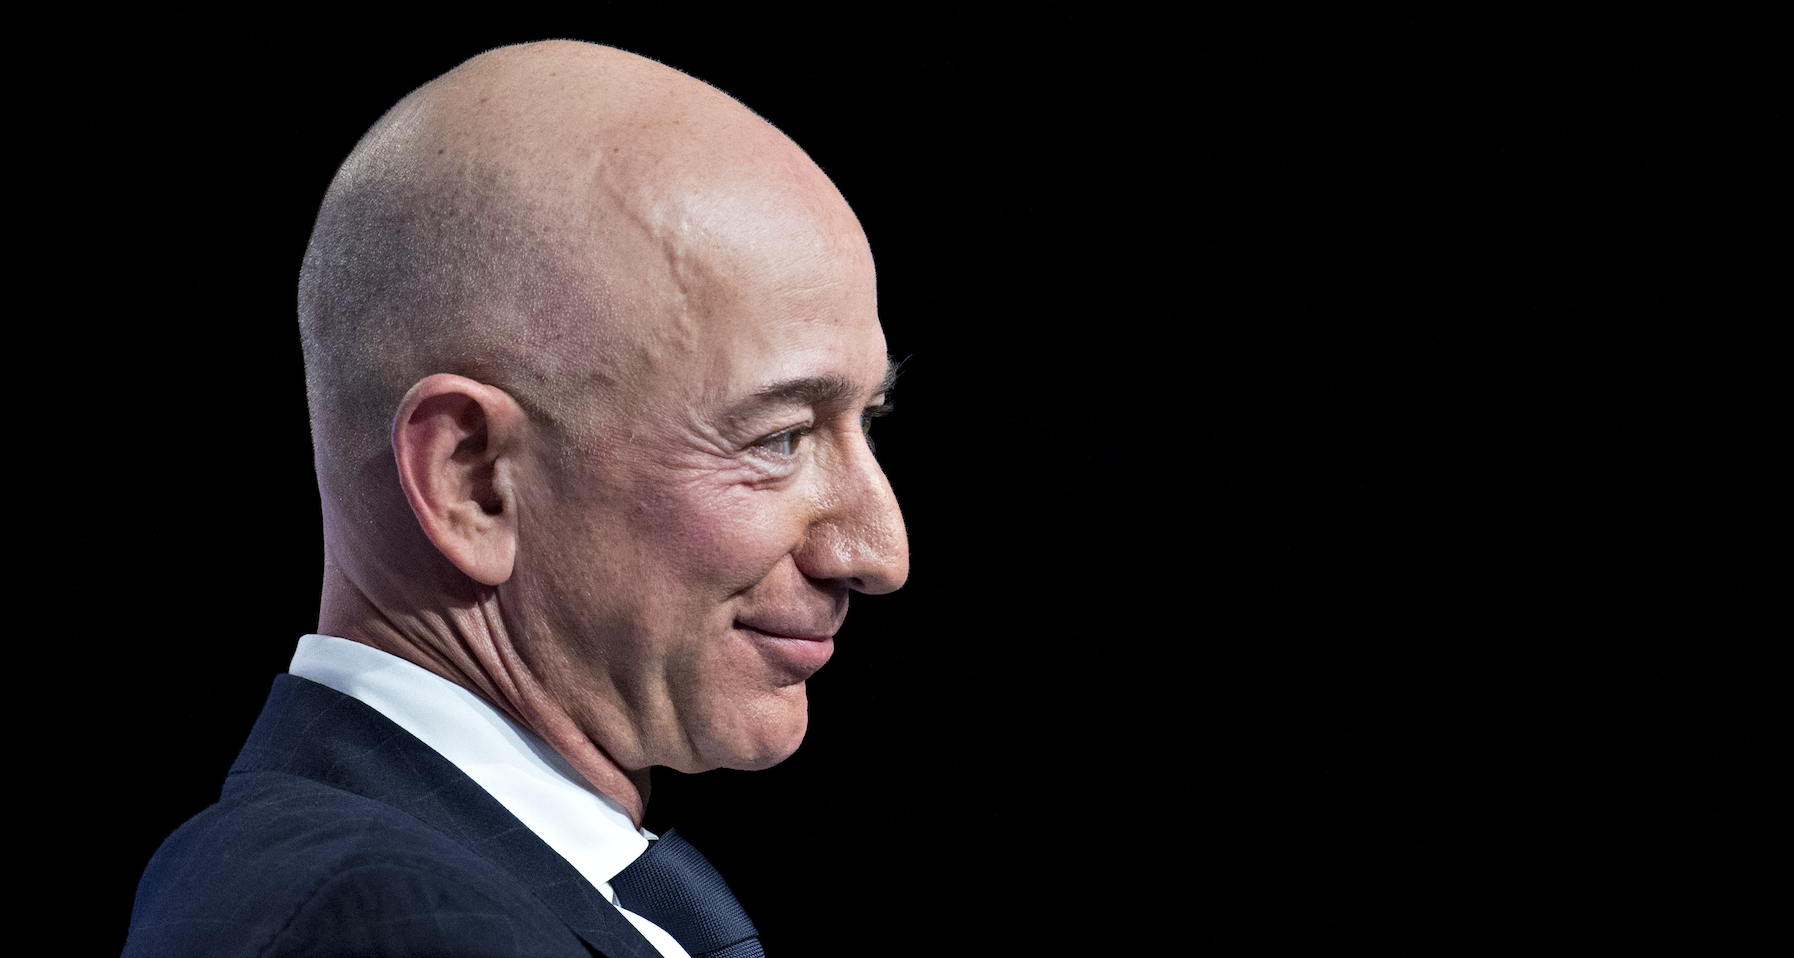 Amazon will pay $0 in taxes on $11,000,000,000 in profit for 2018